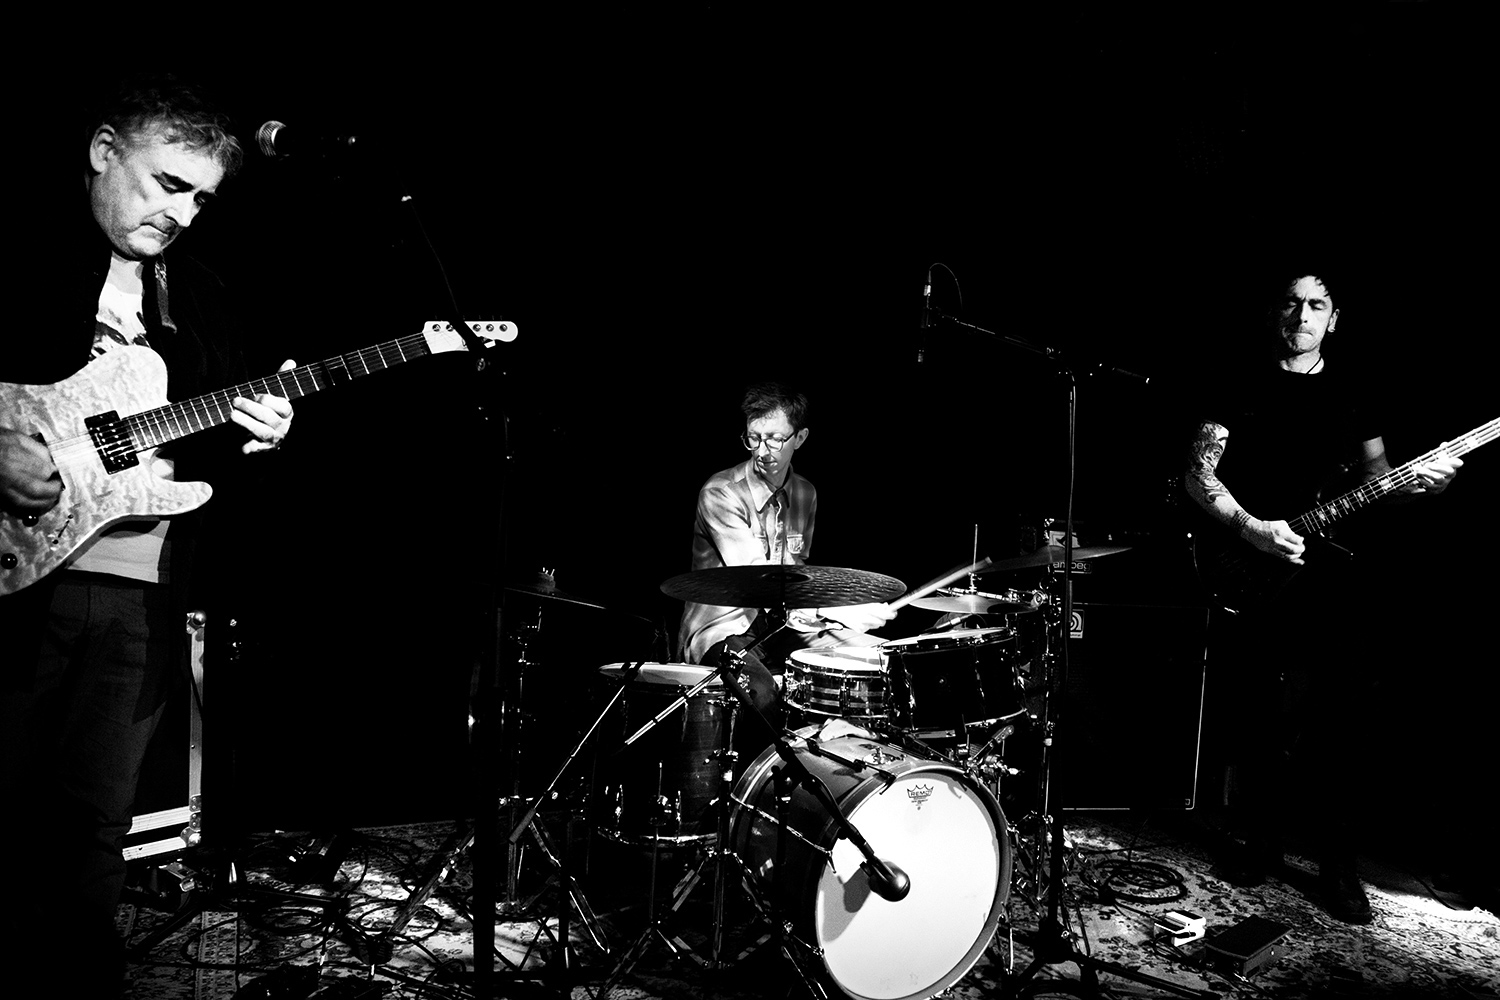 Fred Frith Trio - Concert - Les Ateliers Claus - Brussels, Belgium